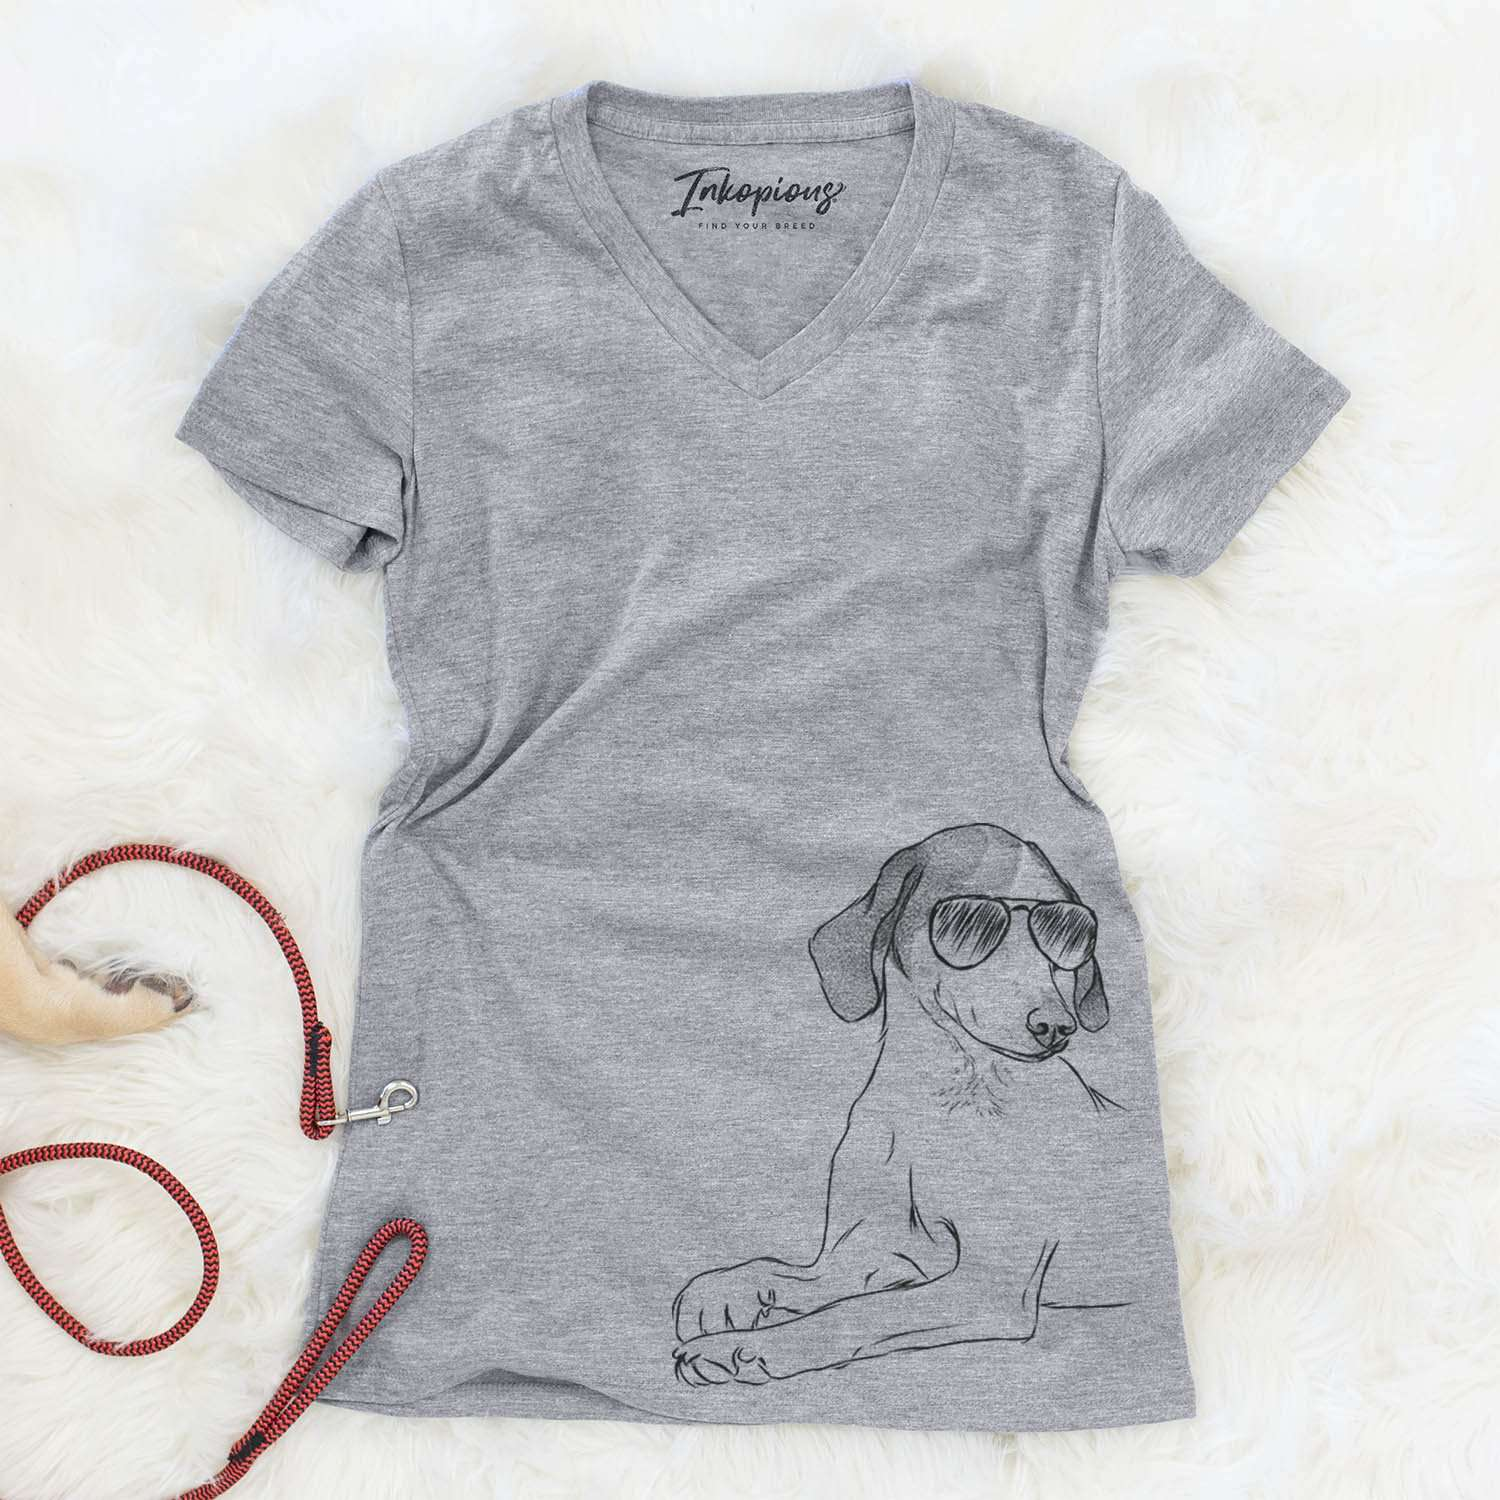 Opie the Foxhound - Women's Modern Fit V-neck Shirt